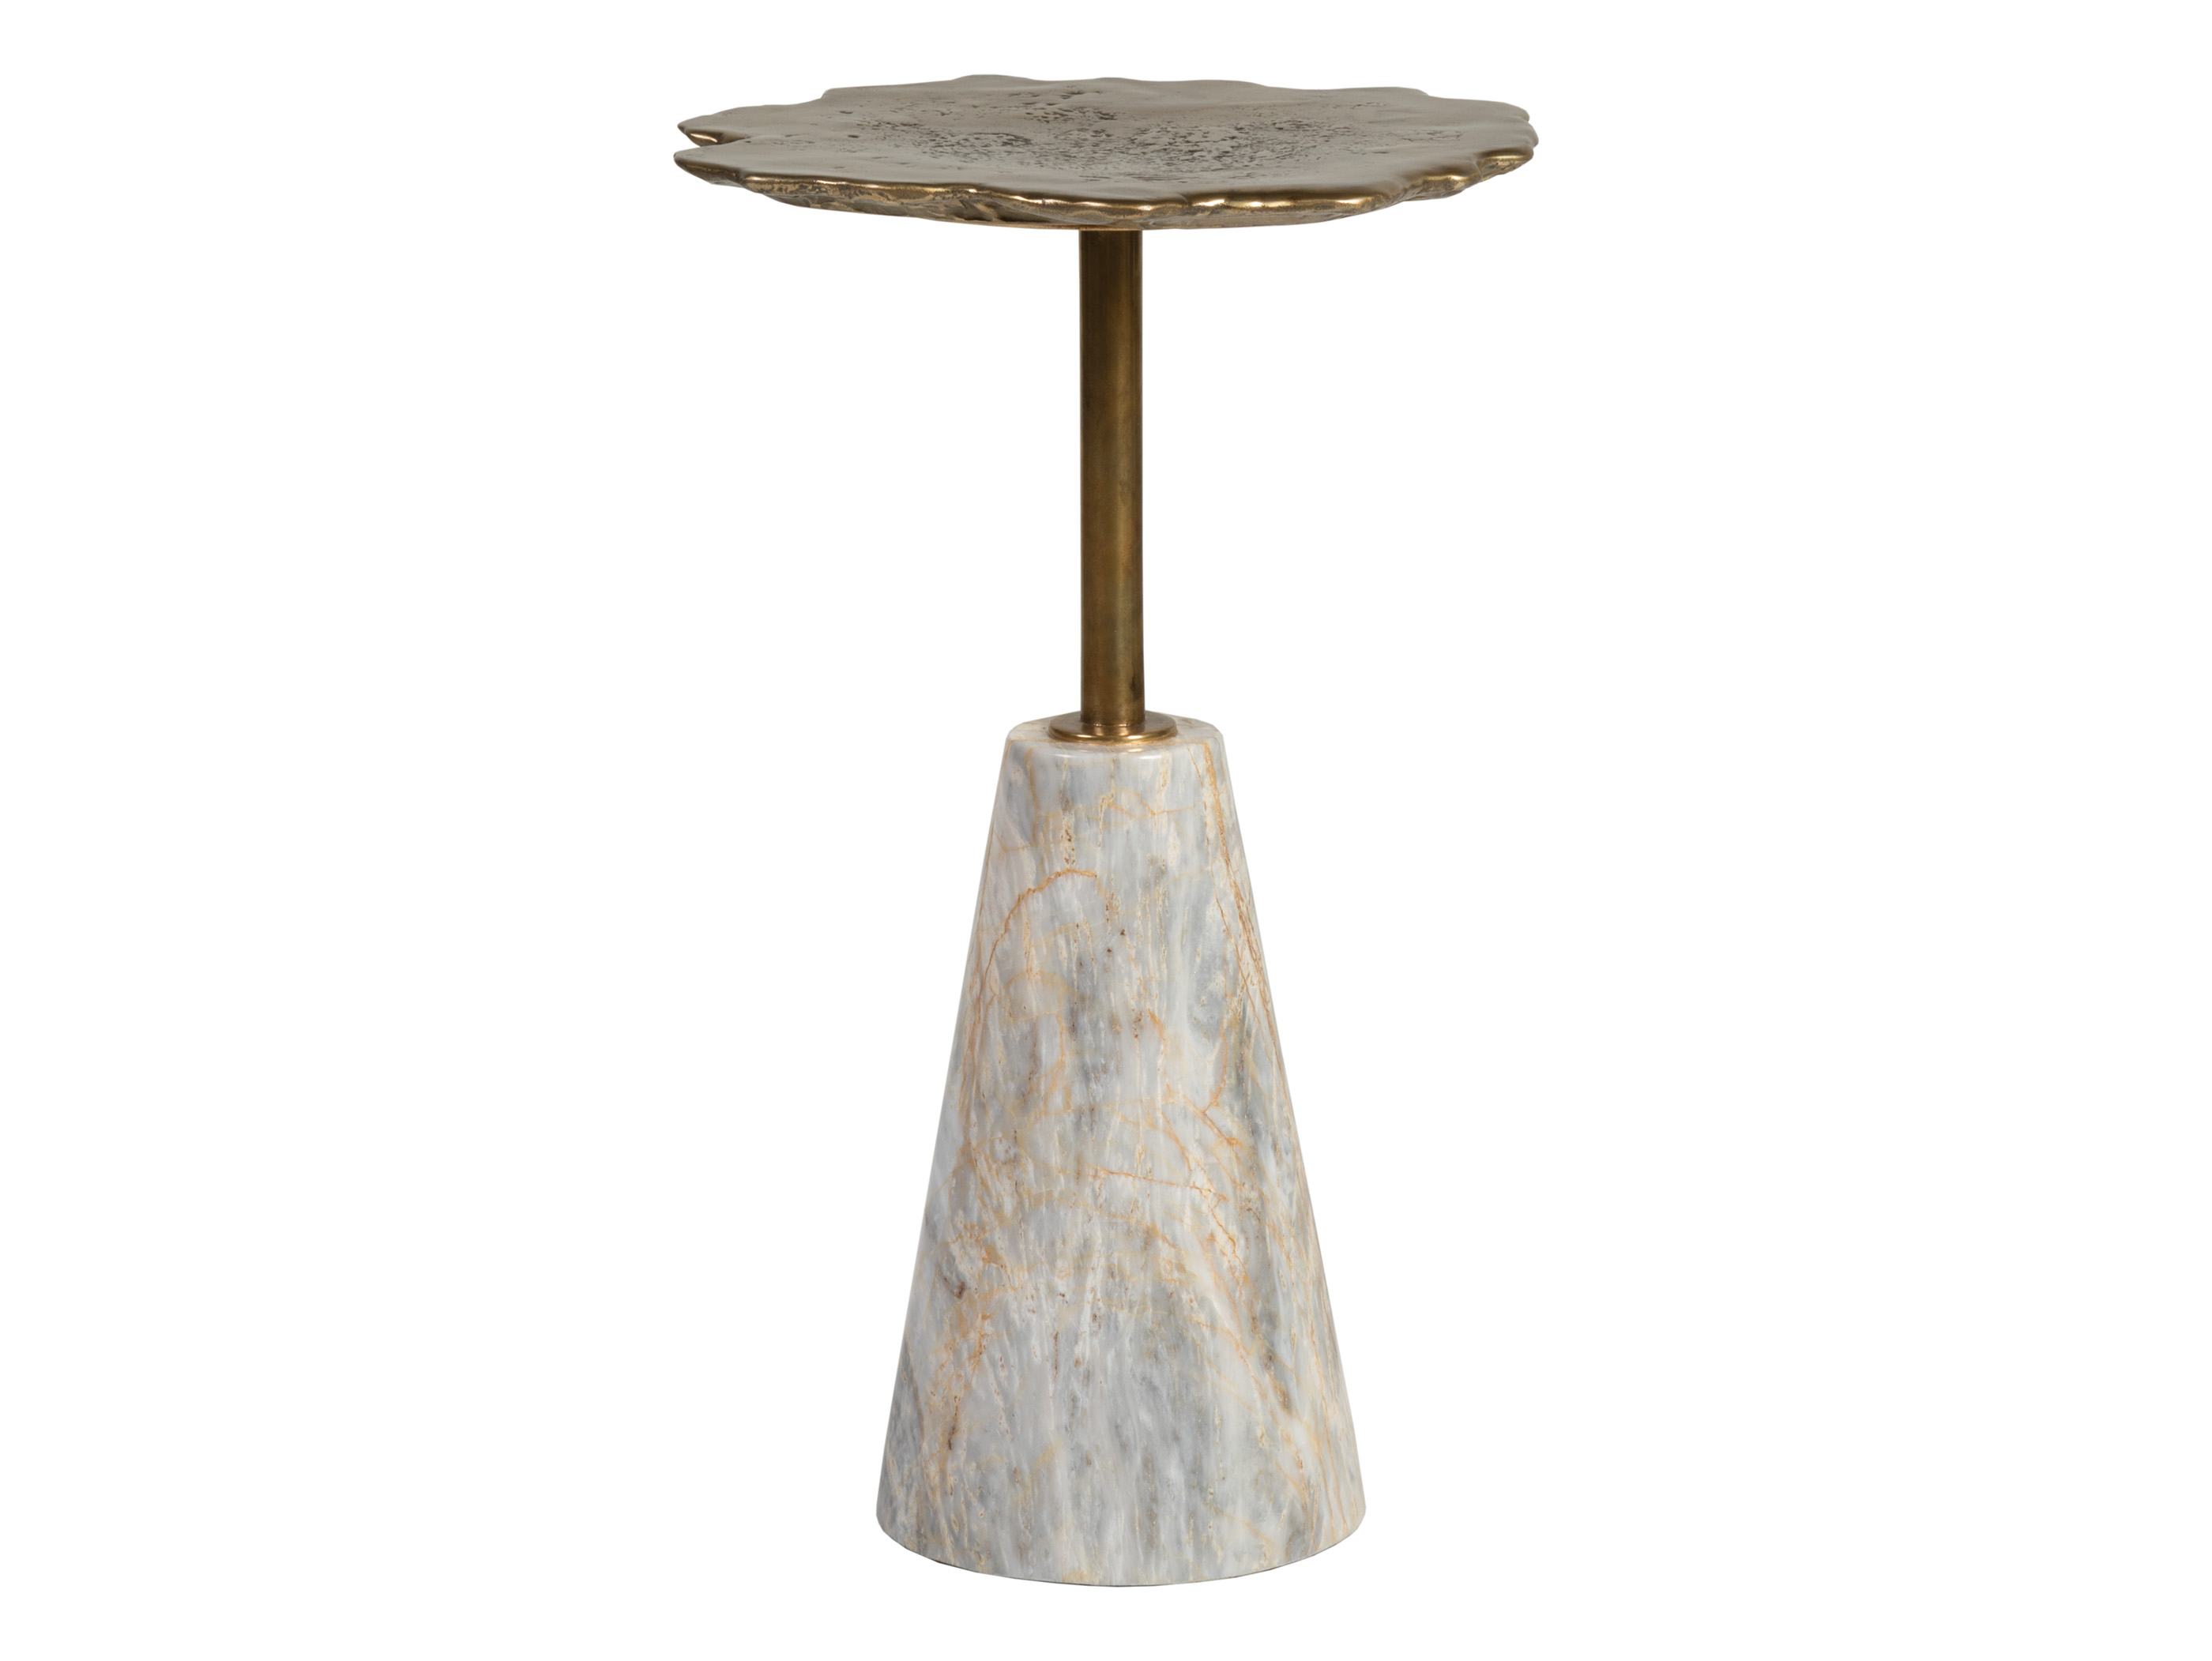 Moriarty Round Spot Table by Artistica at Jacksonville Furniture Mart